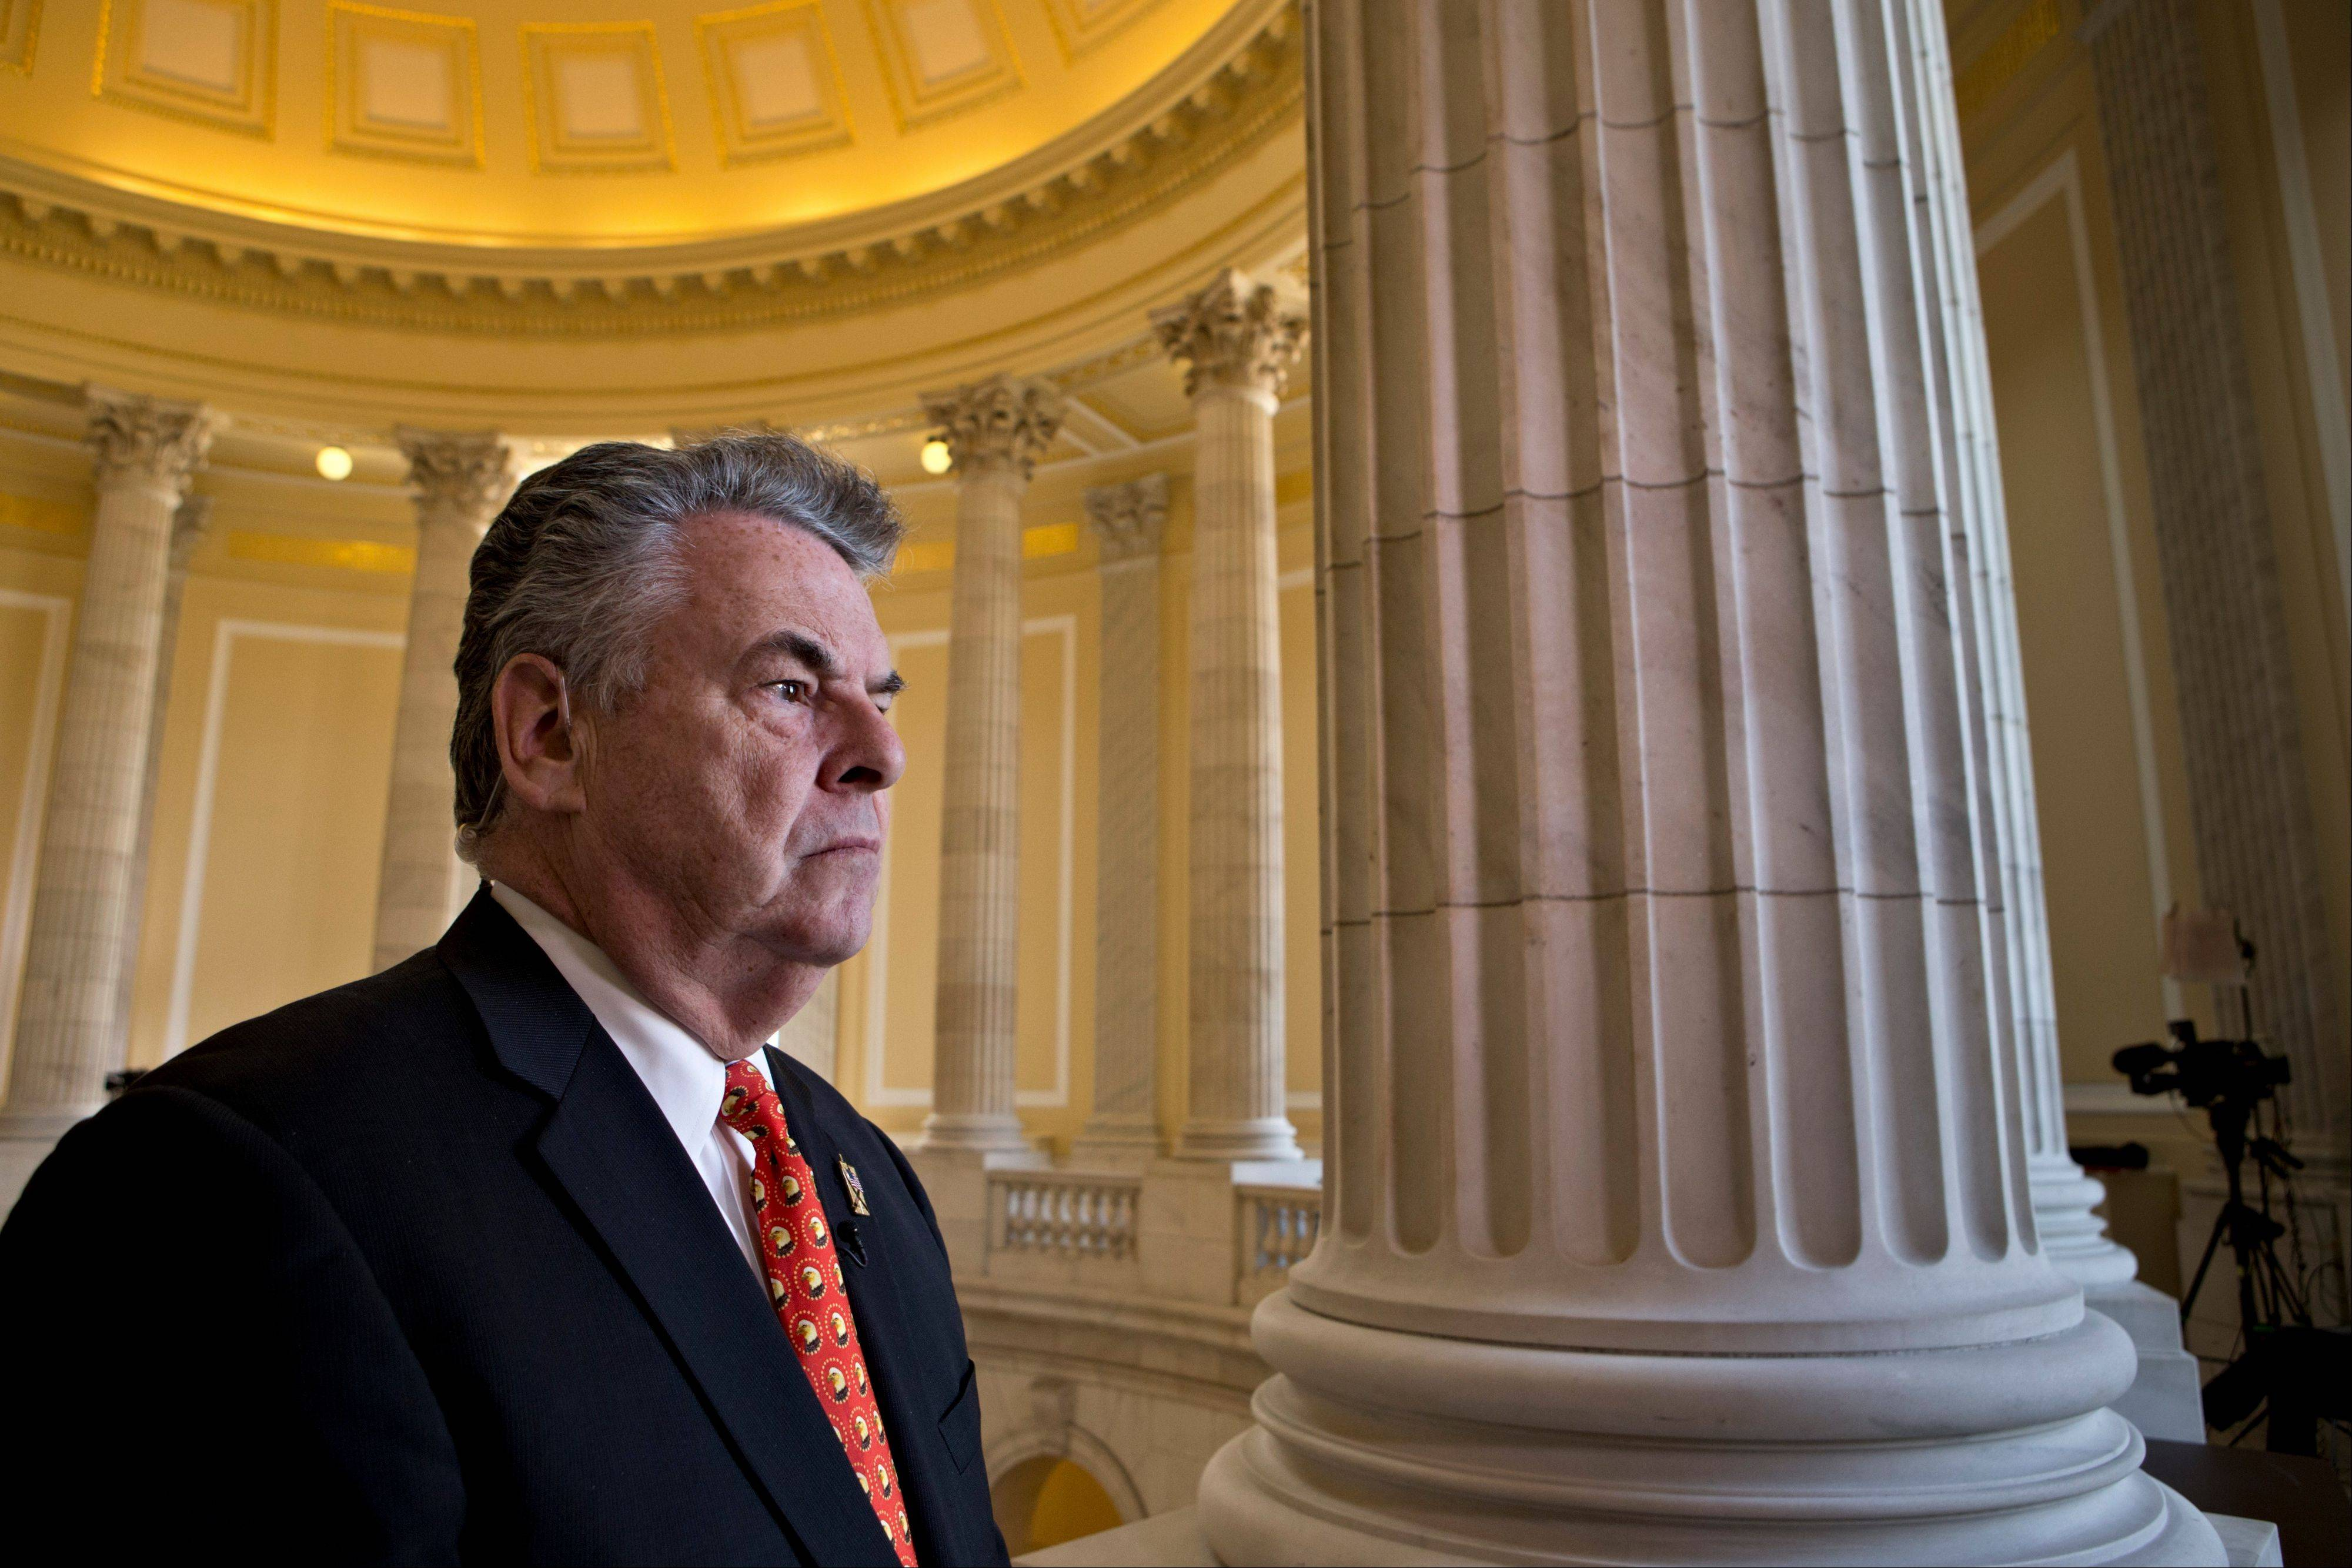 Rep. Peter King, a New York Republican, whose district includes Long Island, expresses his anger and disappointment Wednesday during a cable TV interview on Capitol Hill, after the House GOP leadership decided late New Year's Day to allow the current term of Congress to end without holding a vote on aid for victims of Superstorm Sandy.